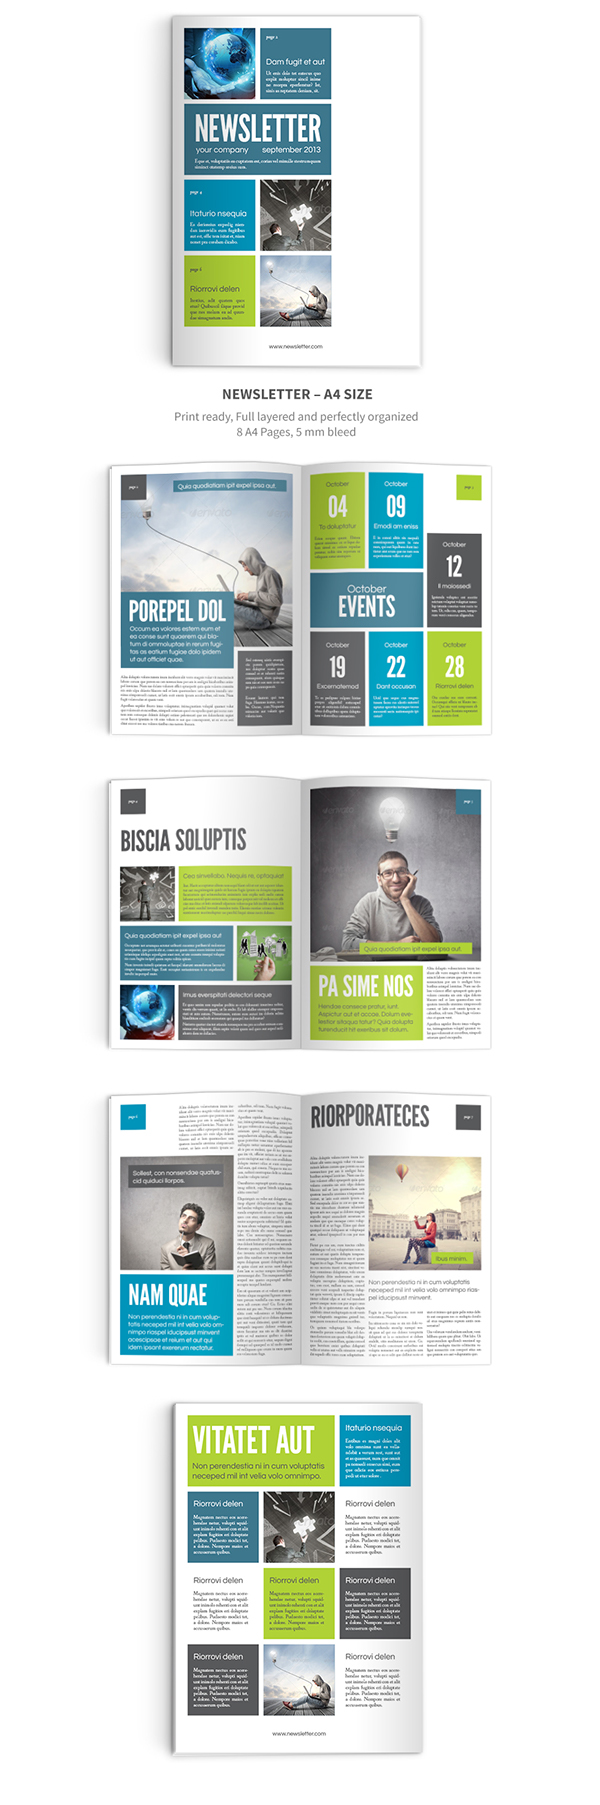 Newsletter Indesign Template on Behance